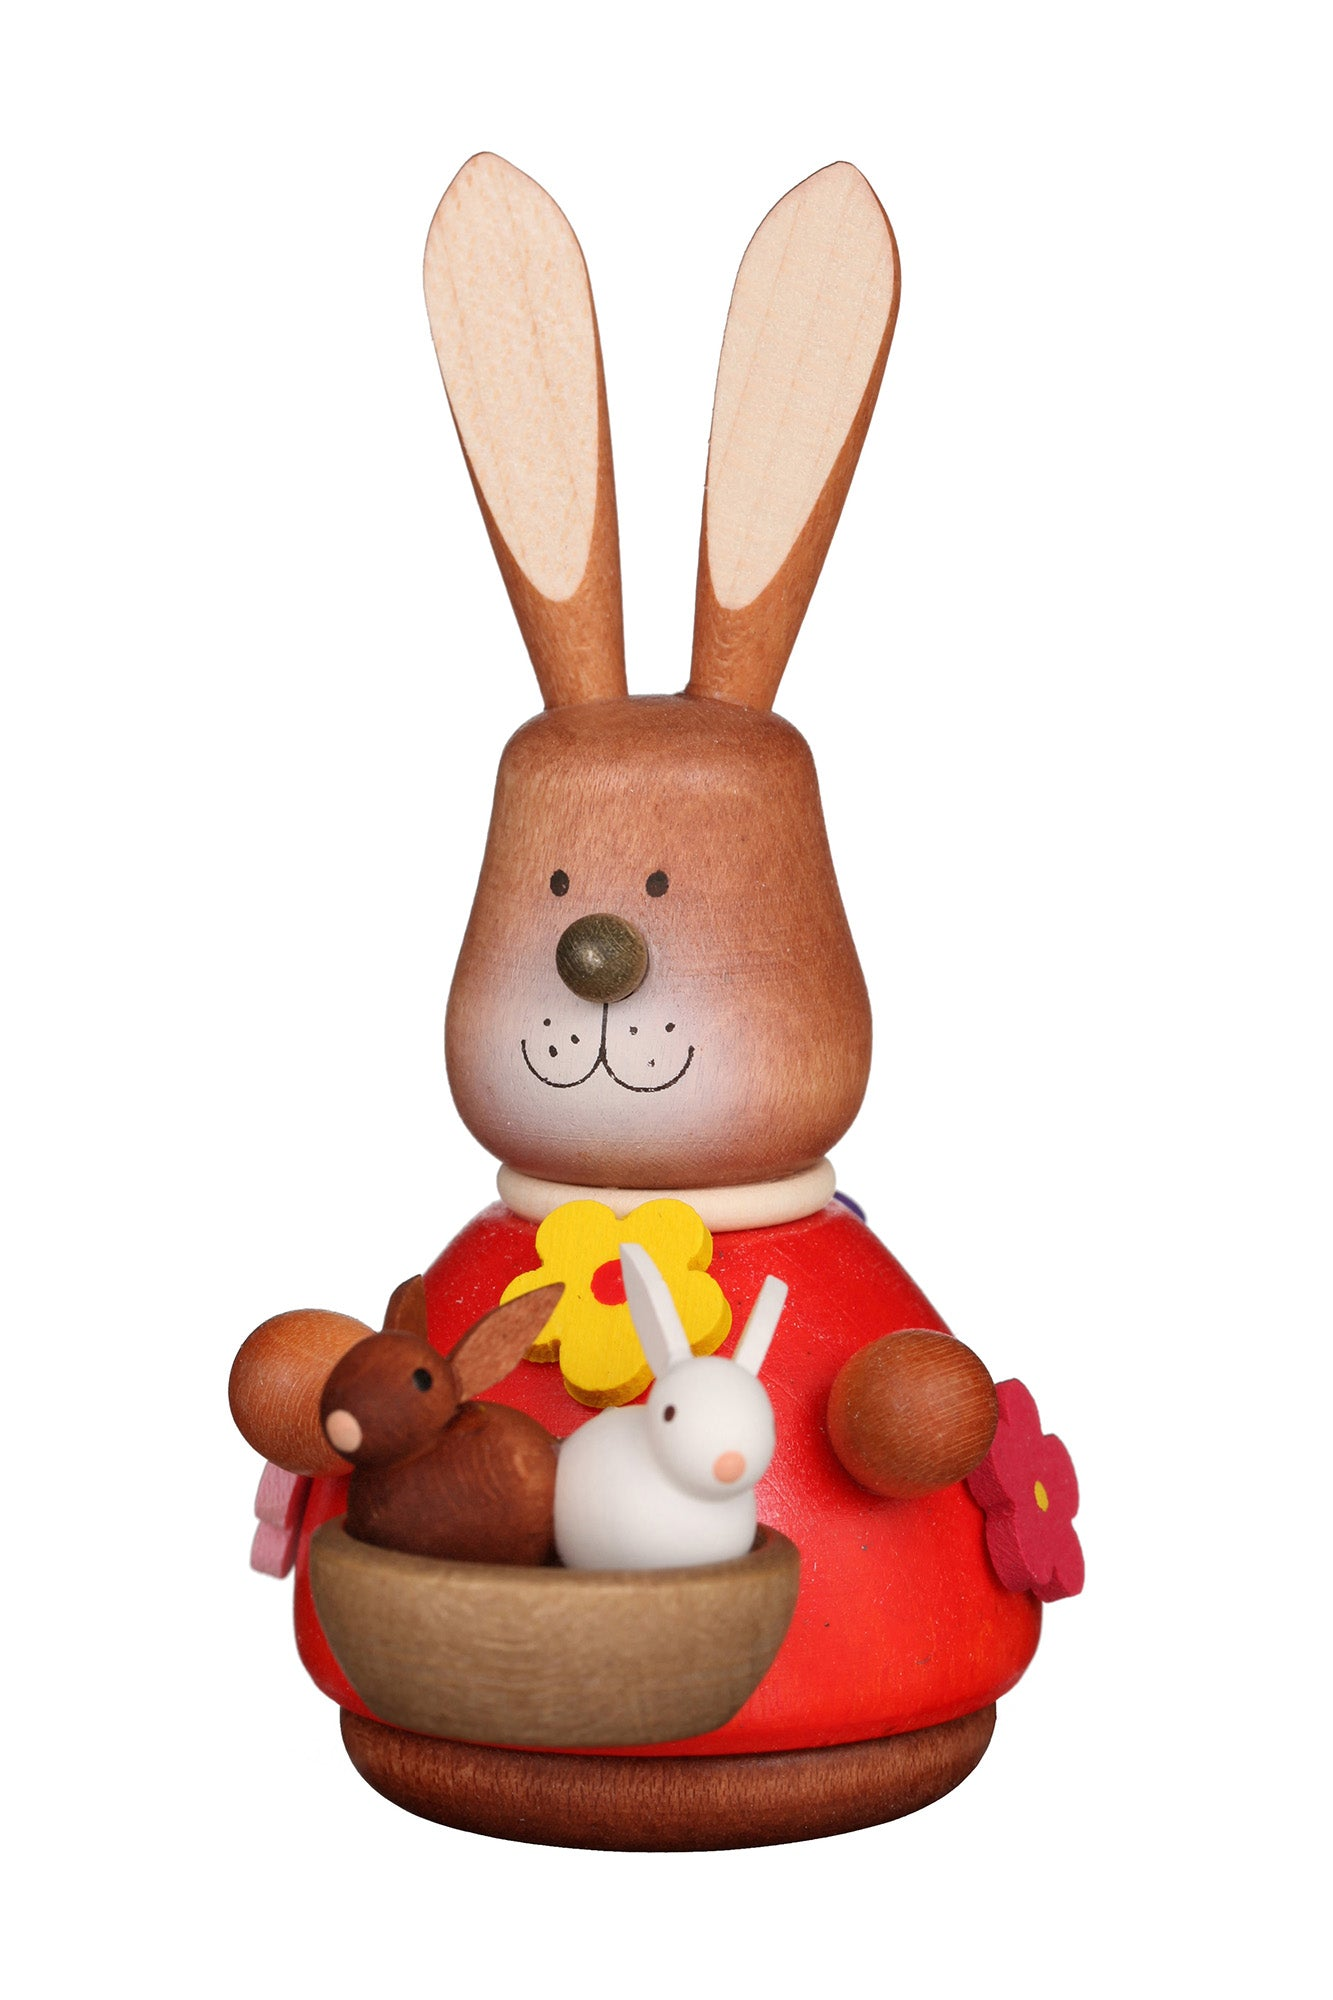 Easter bunny wobble figure with basket of bunnies